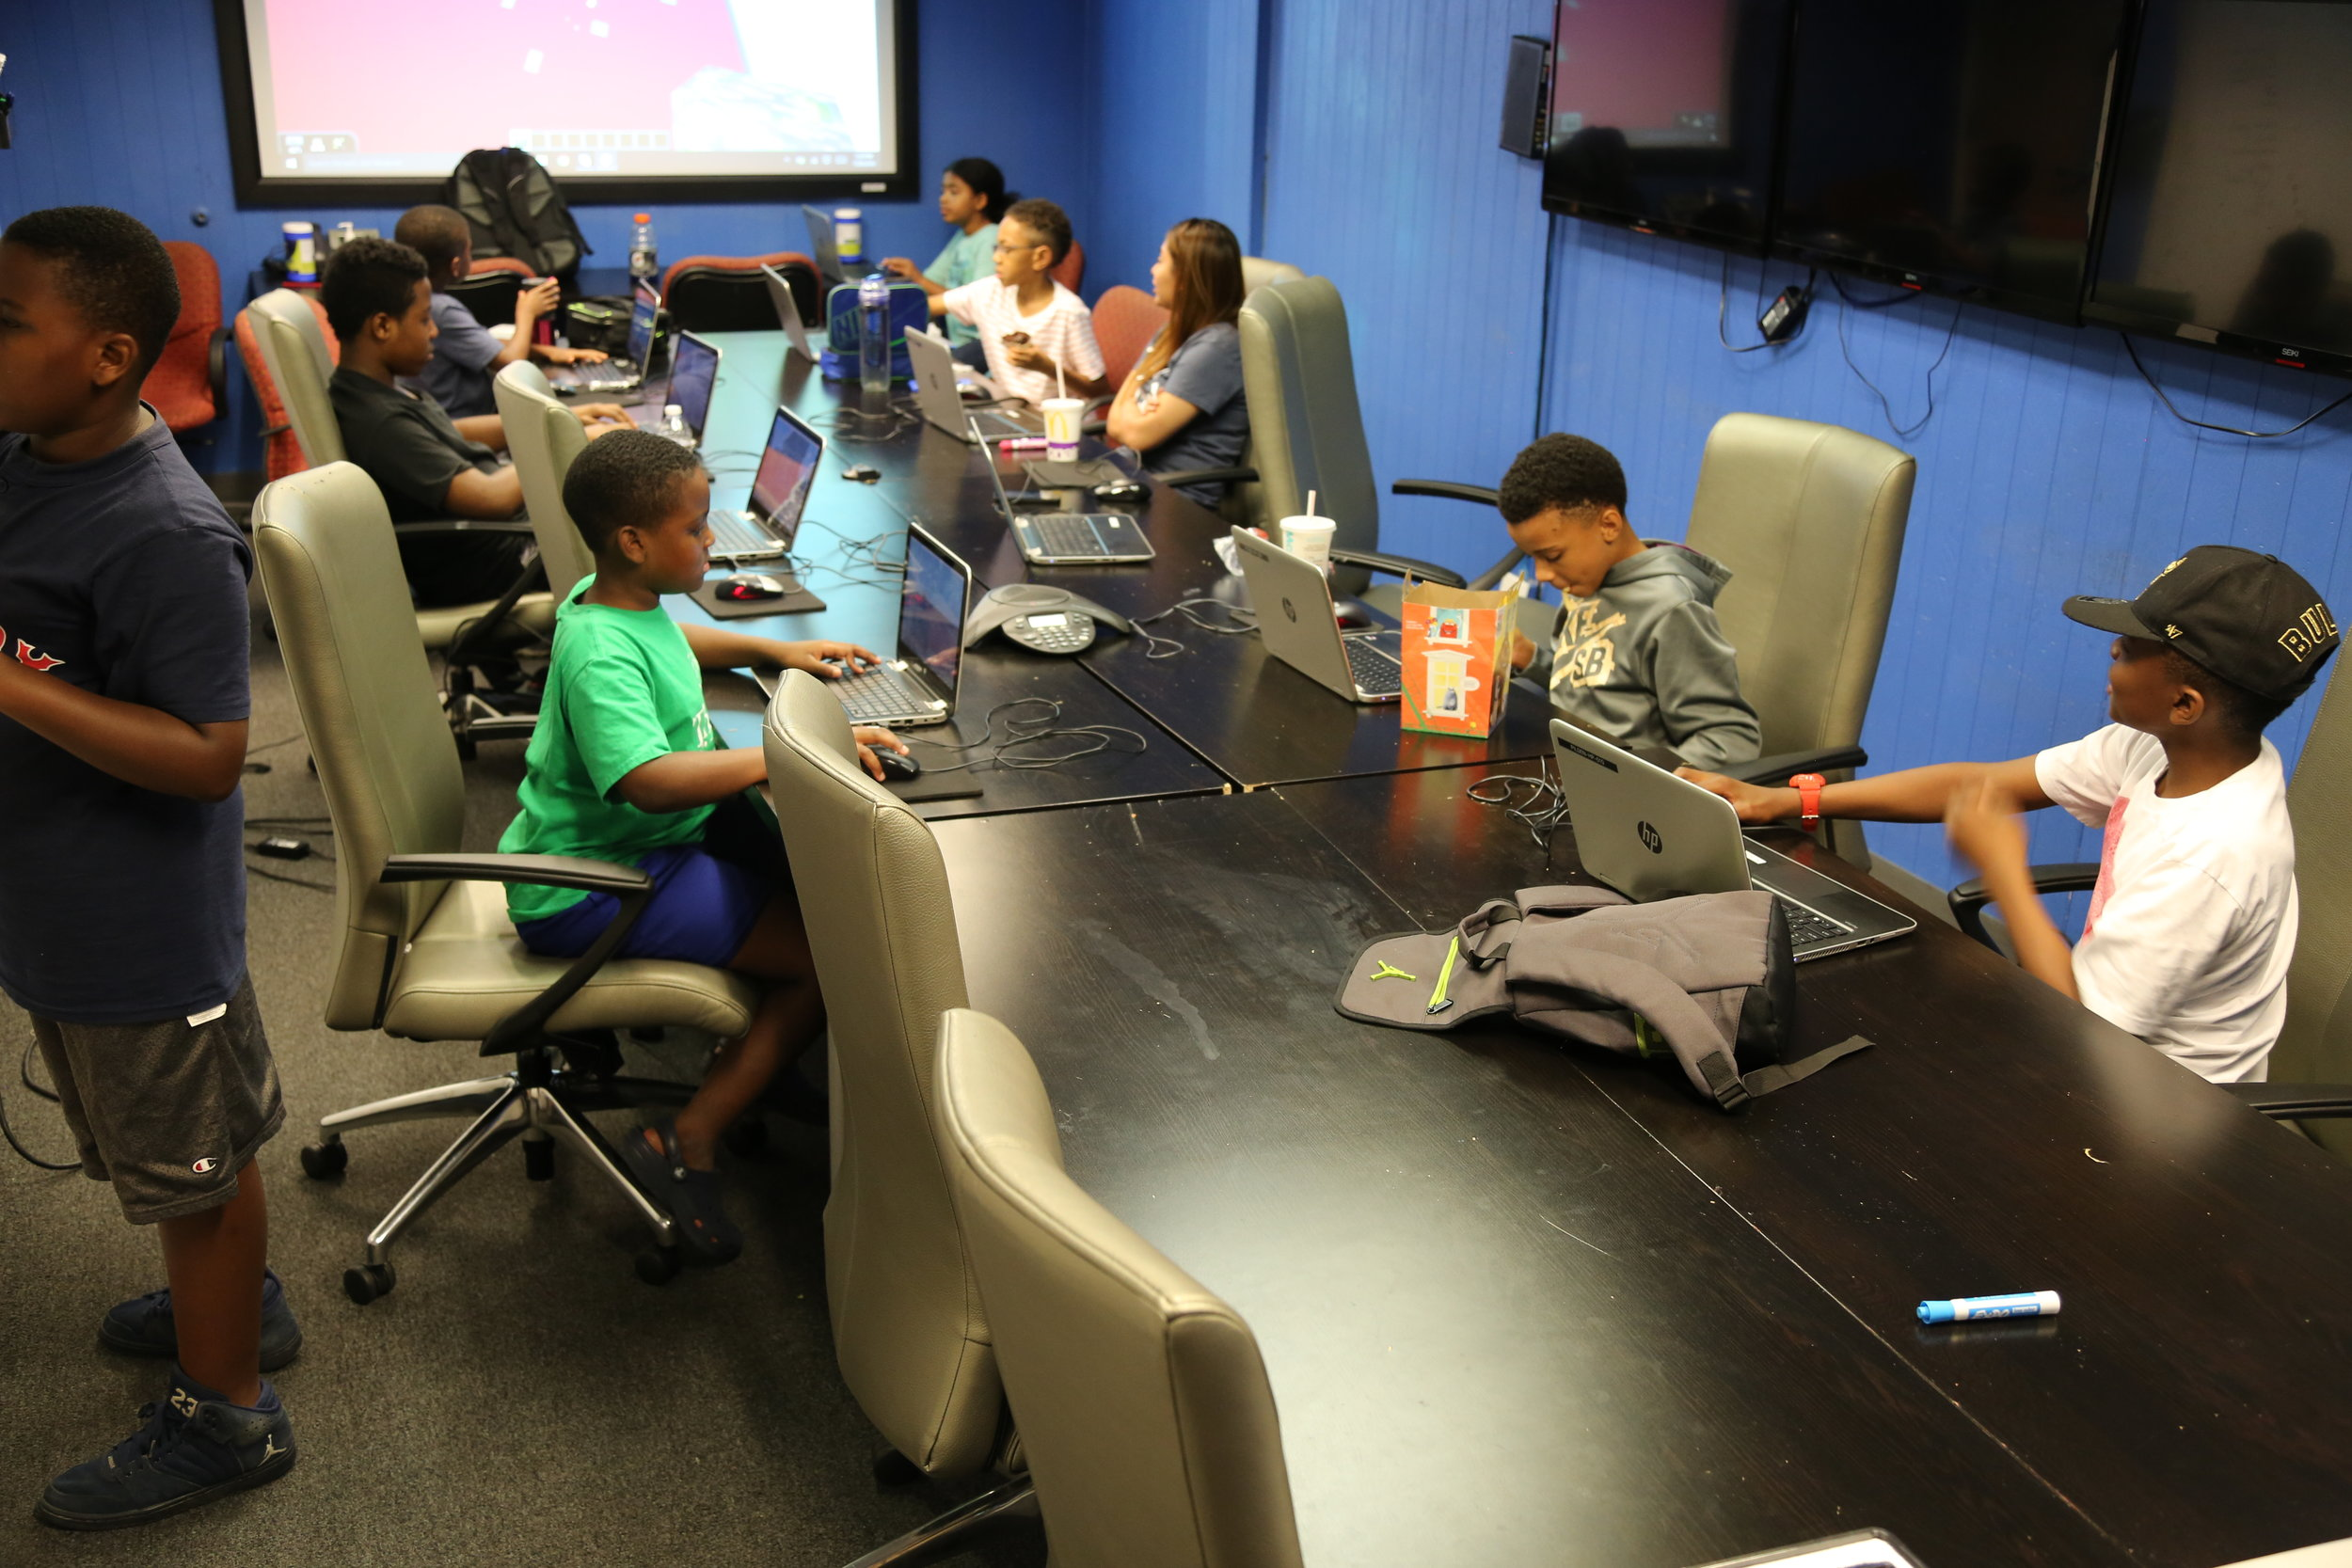 In Chicago, Creating IT Futures connects teens to the IT industry through work-based learning programs.